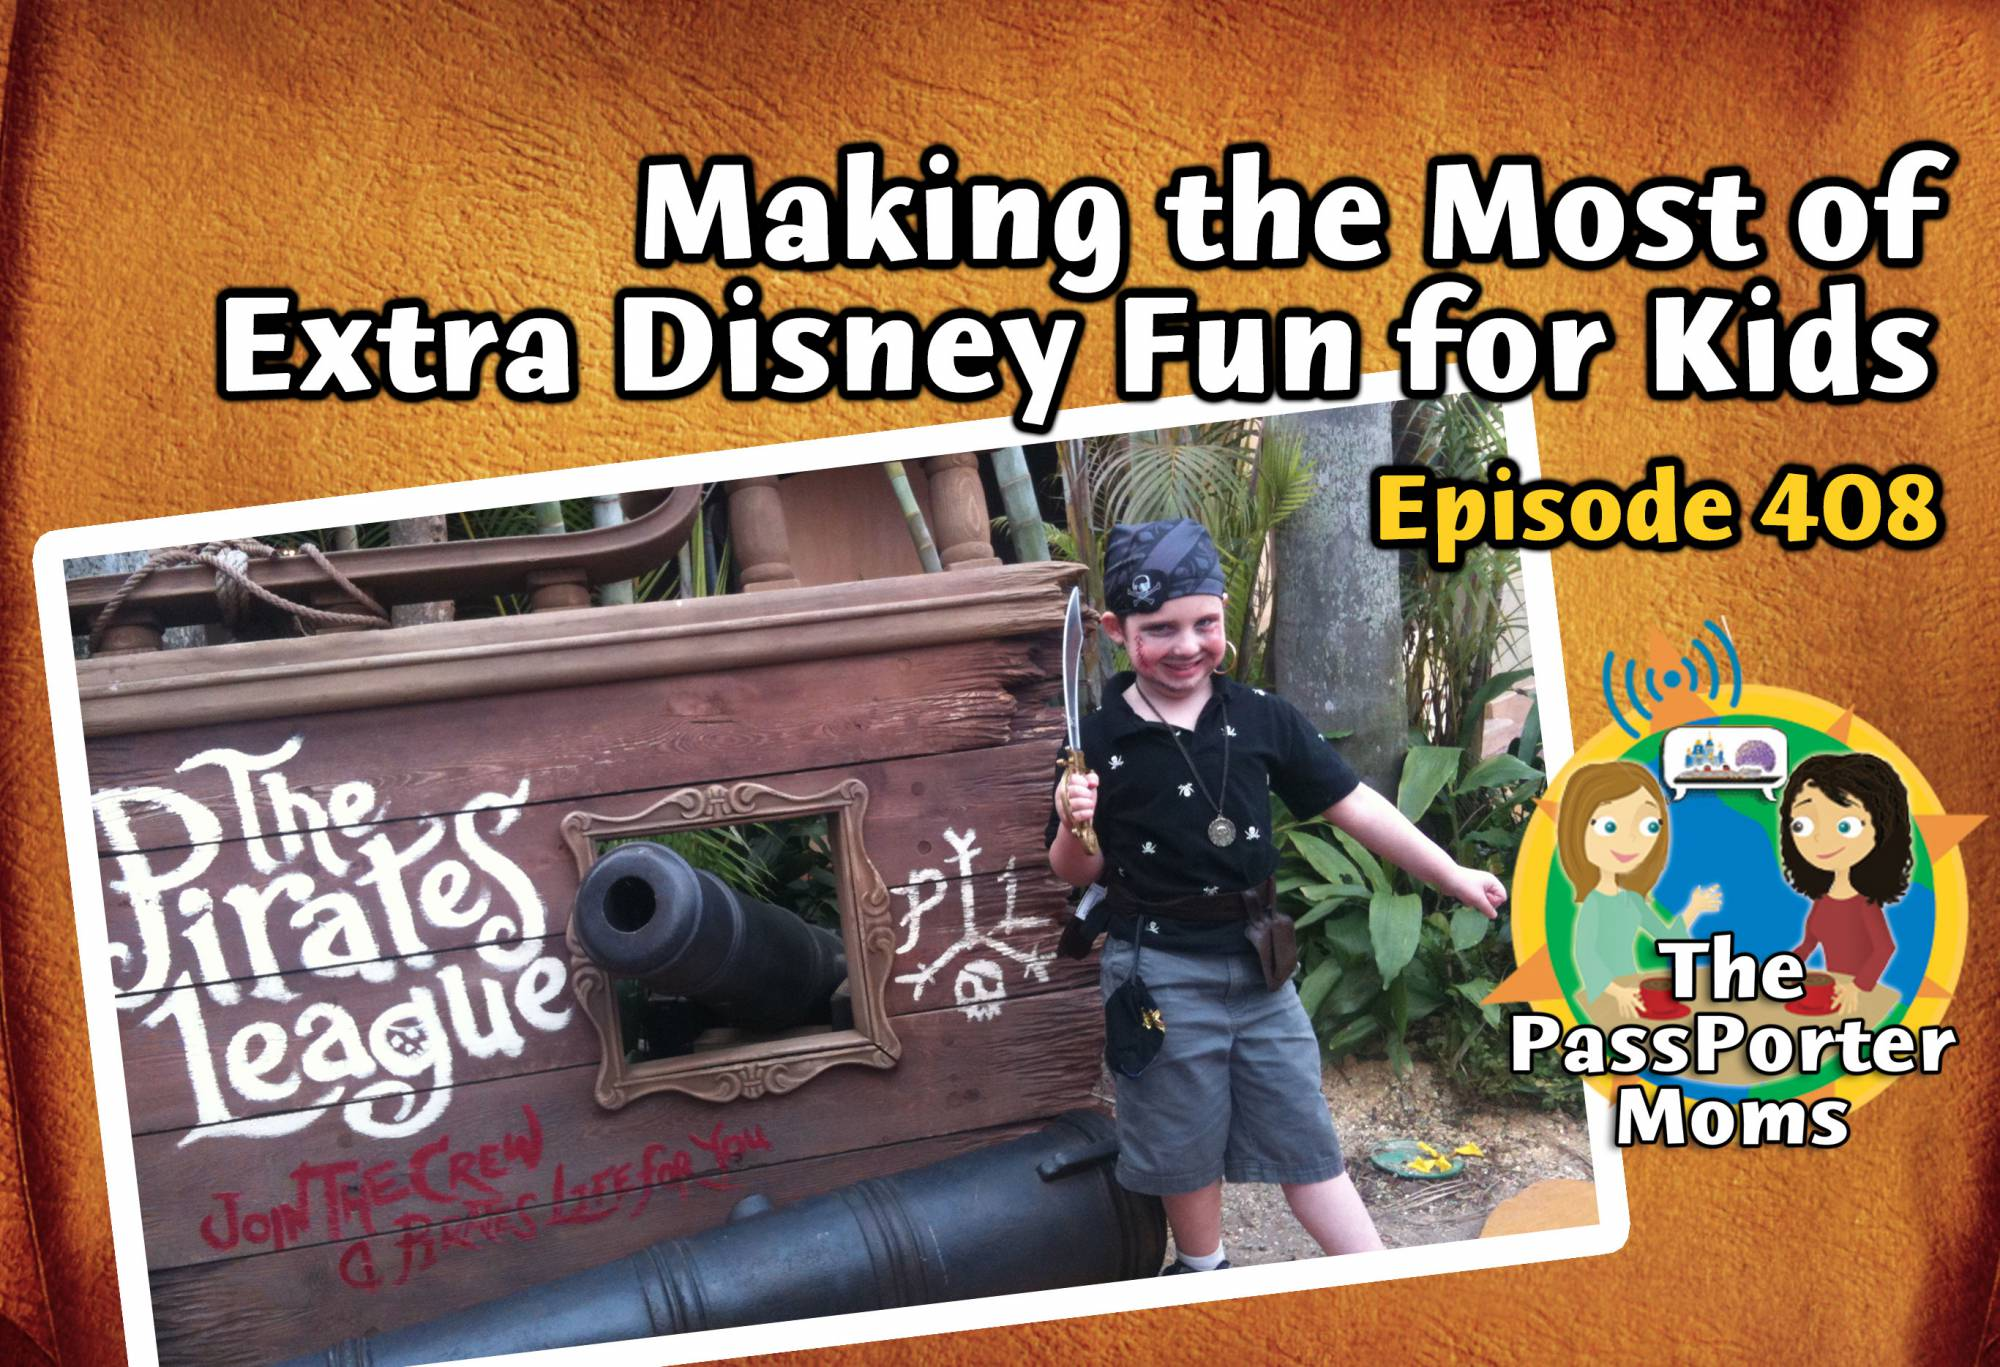 Making the Most of Extra Disney Fun for Kids